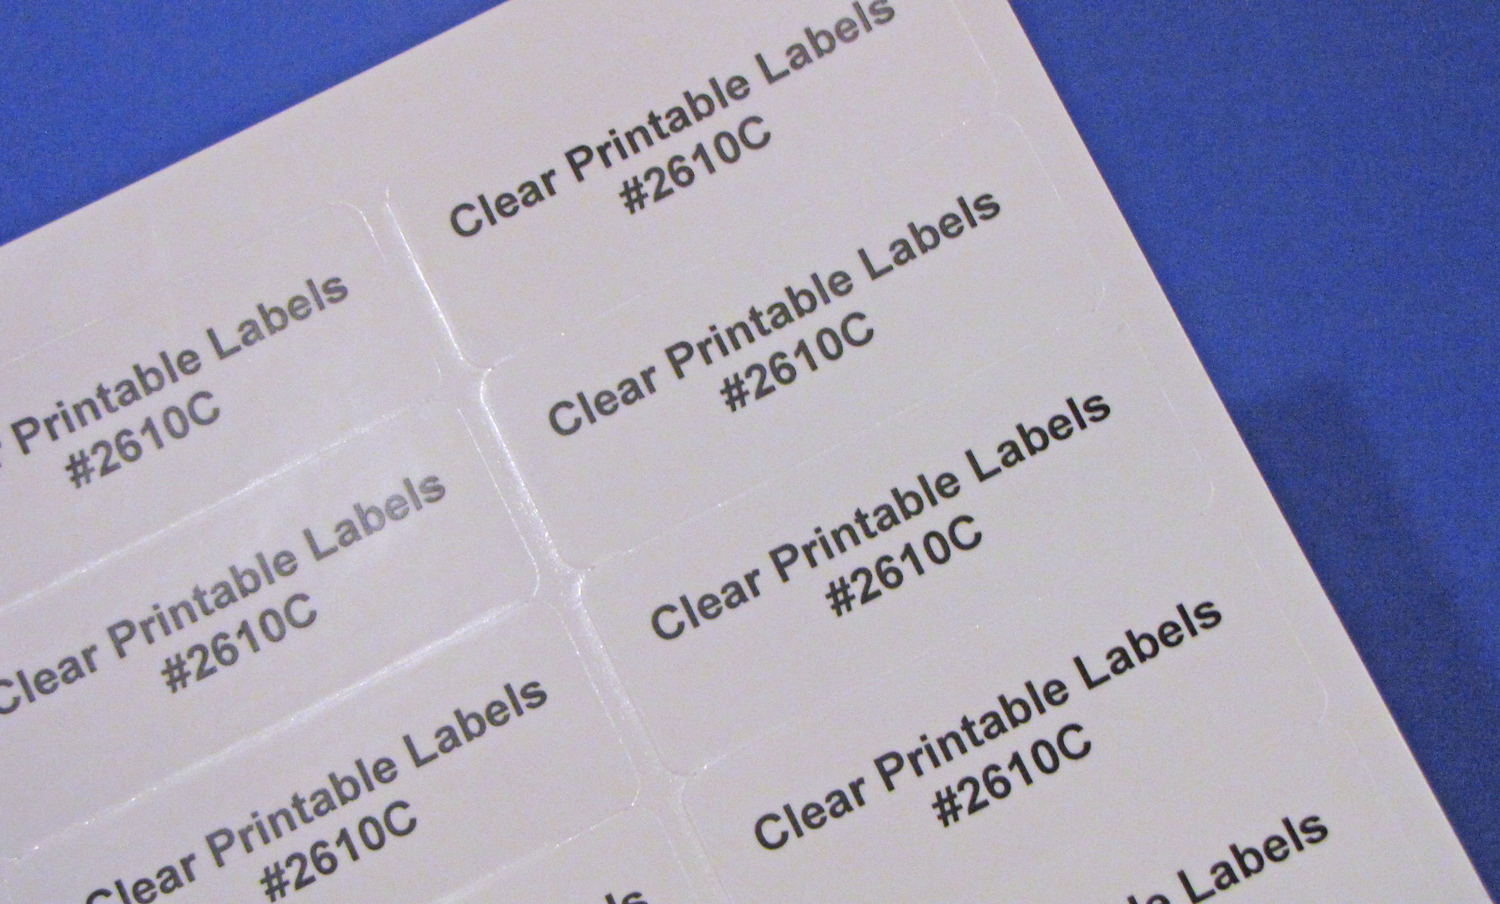 image regarding Printable Clear Labels known as Shiny Distinct Laser Printable 30 up Labels 50 Sheets 2 5/8 x 1 #2610C